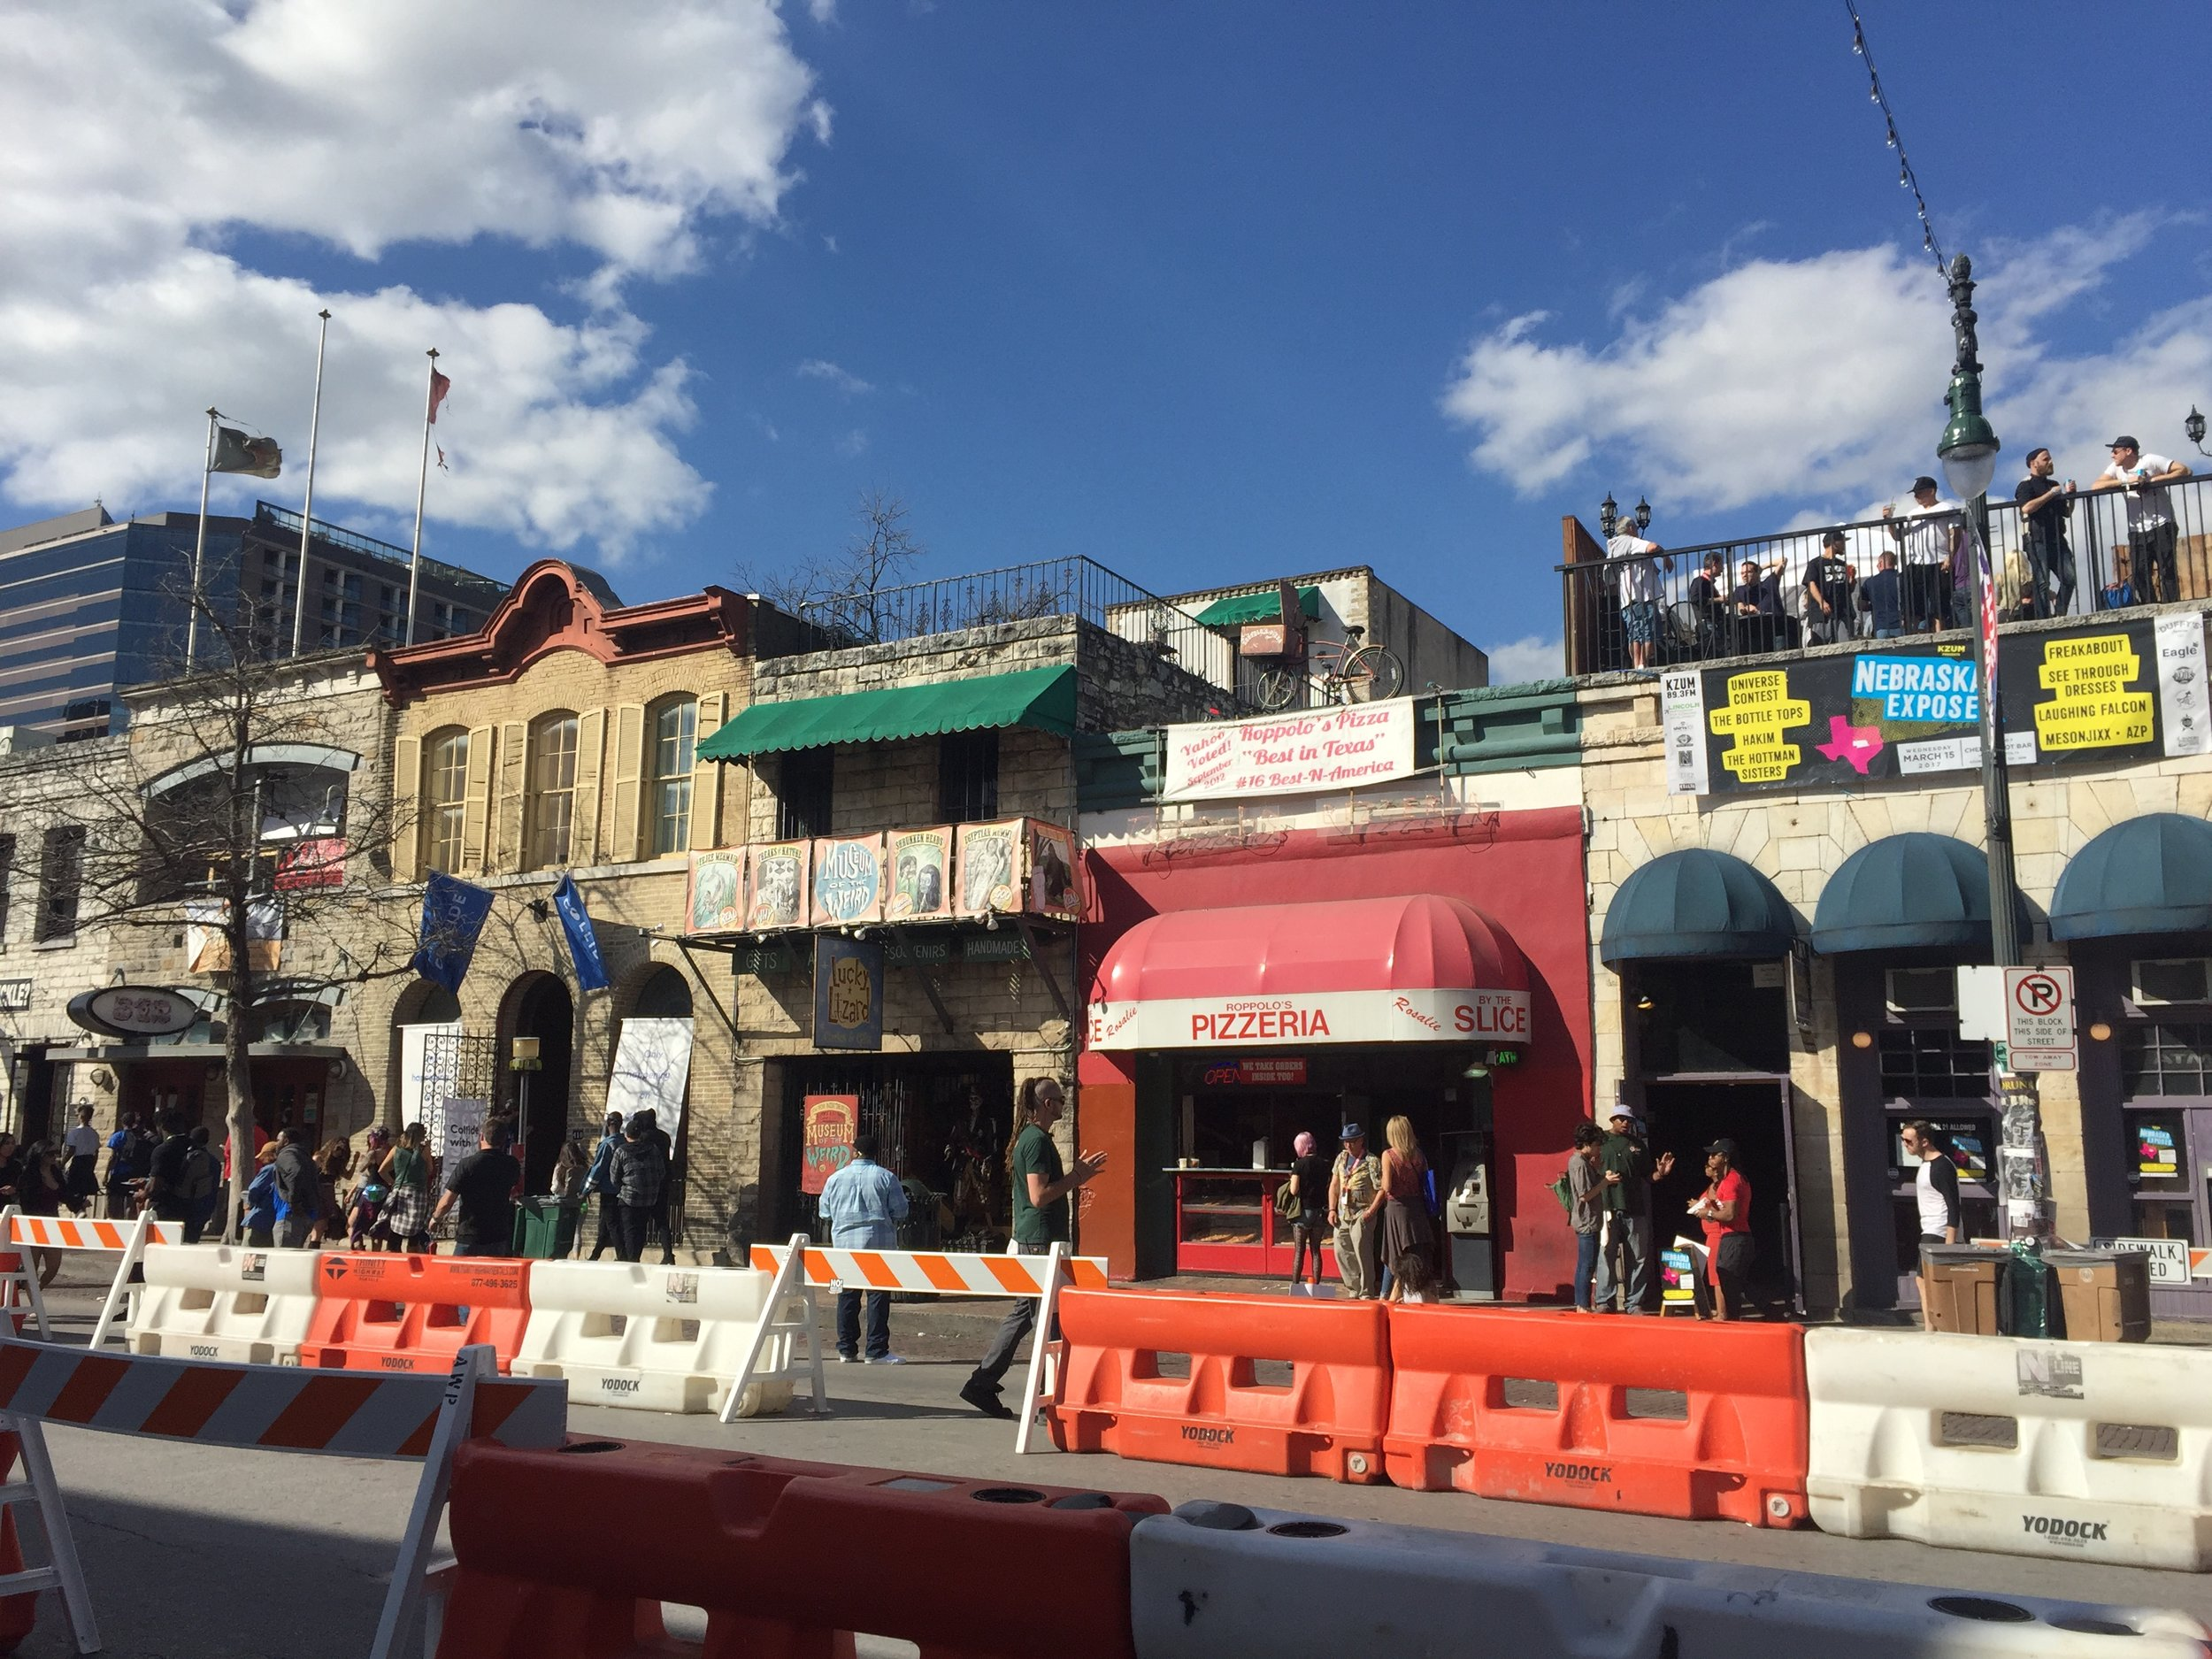 6th street with live music and roof top parties.